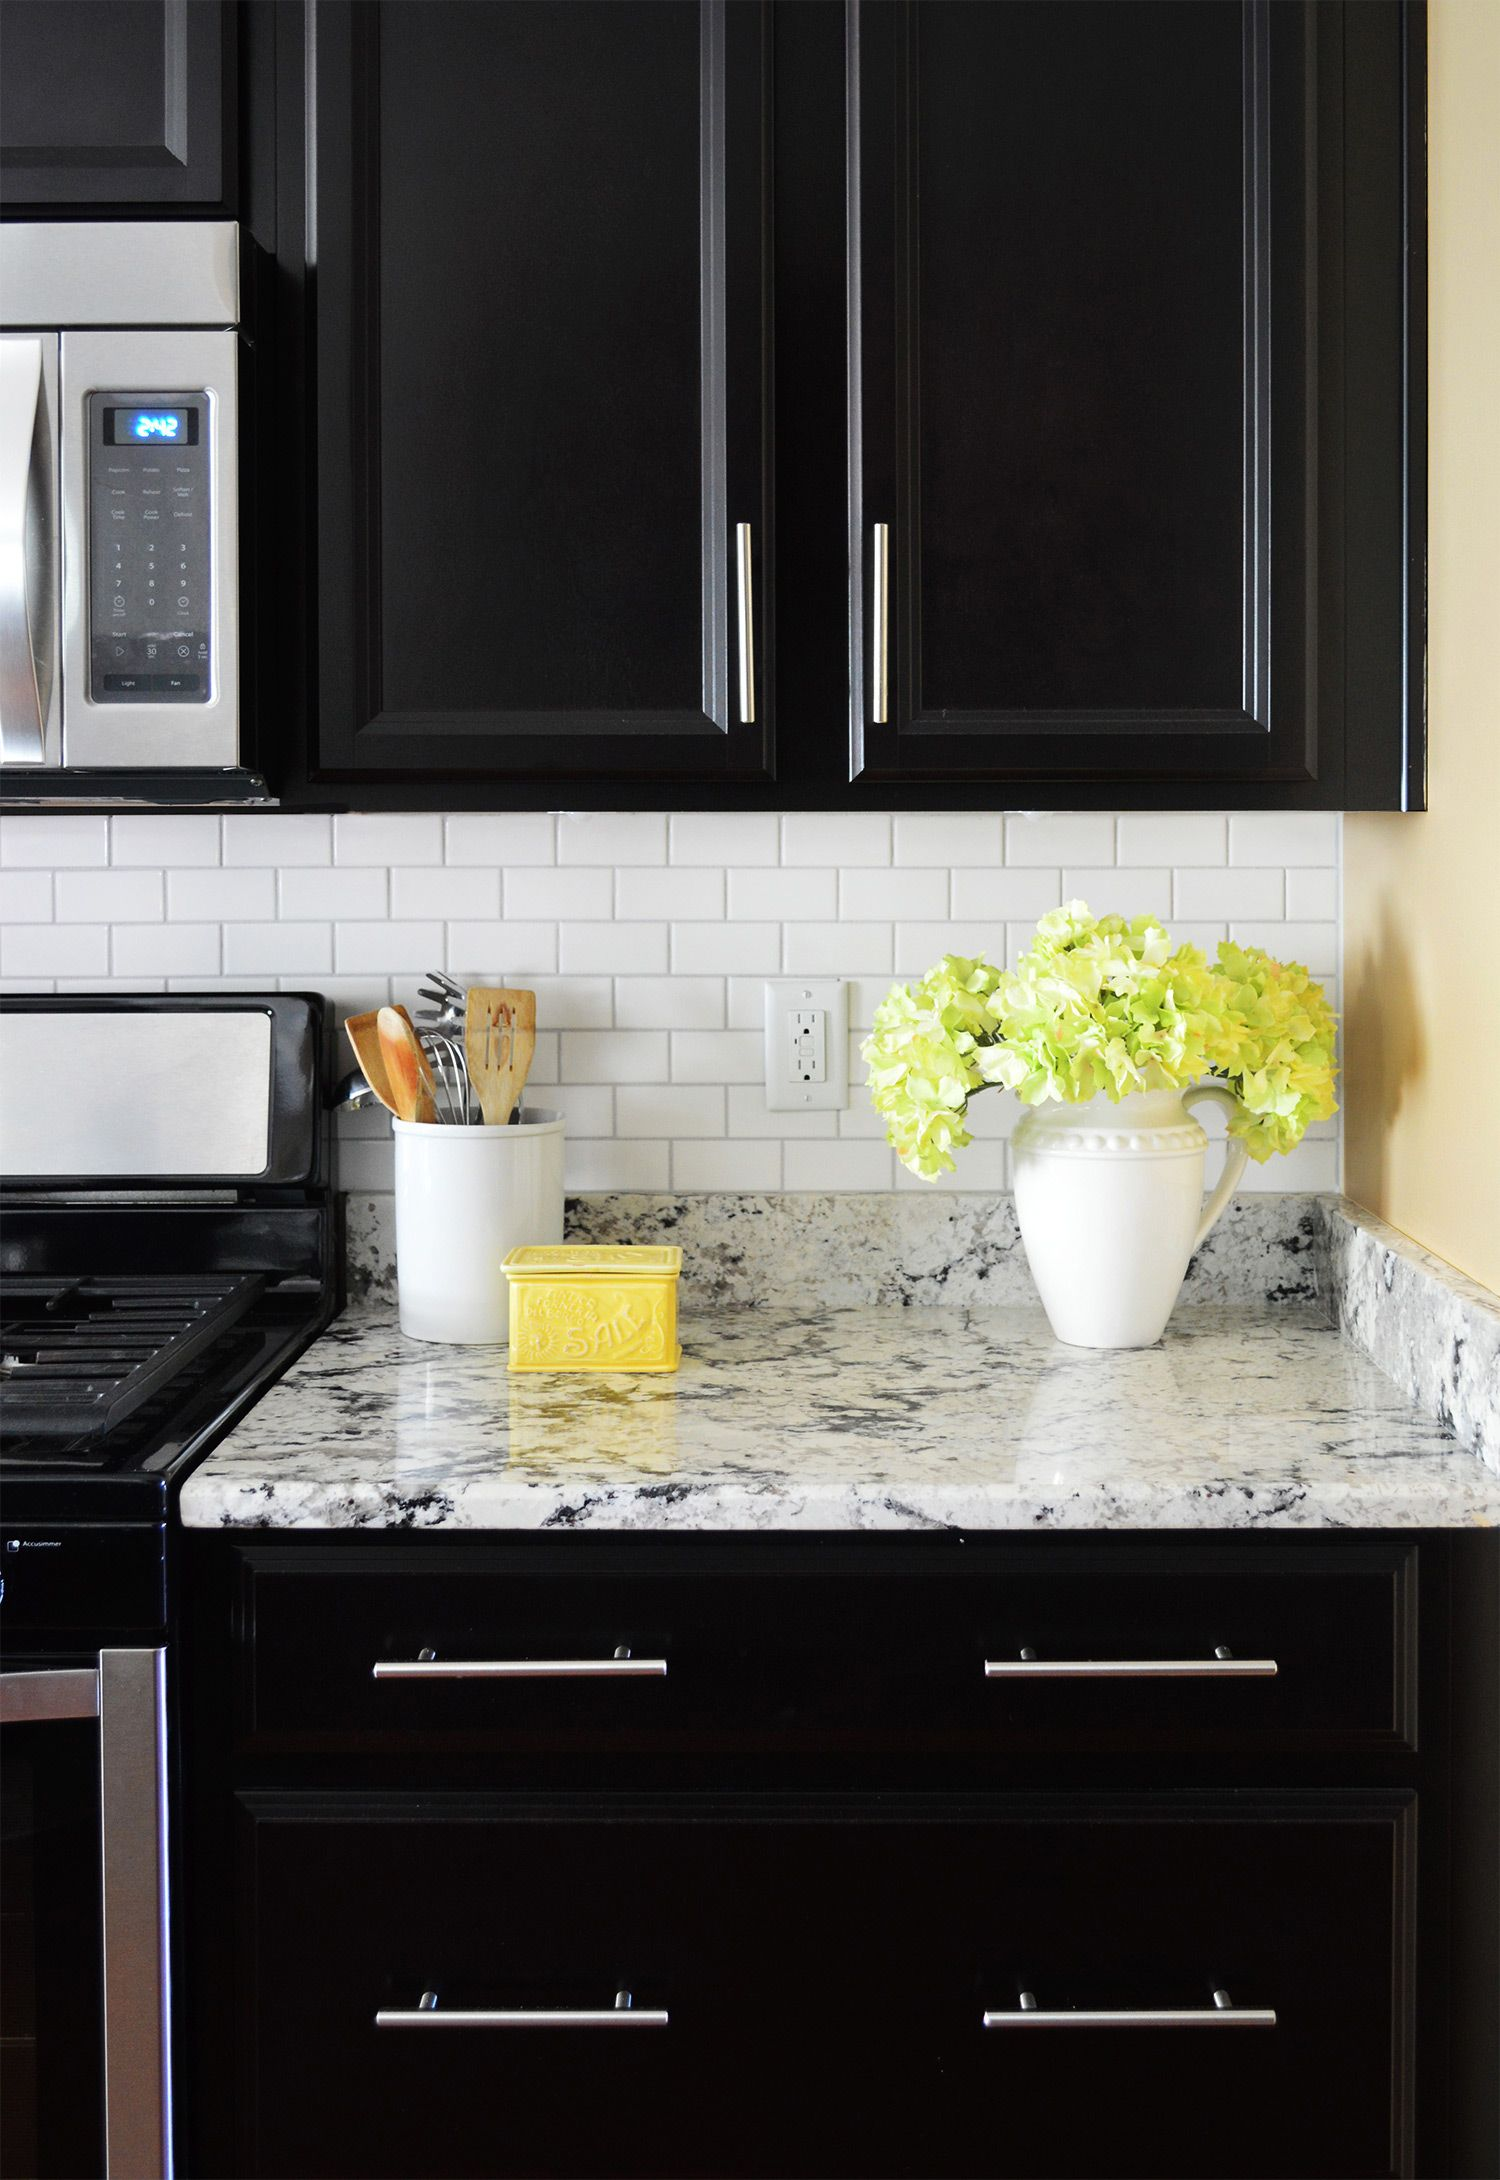 Installing A Subway Tile Backsplash For $200 | Casas, Inspiración y ...